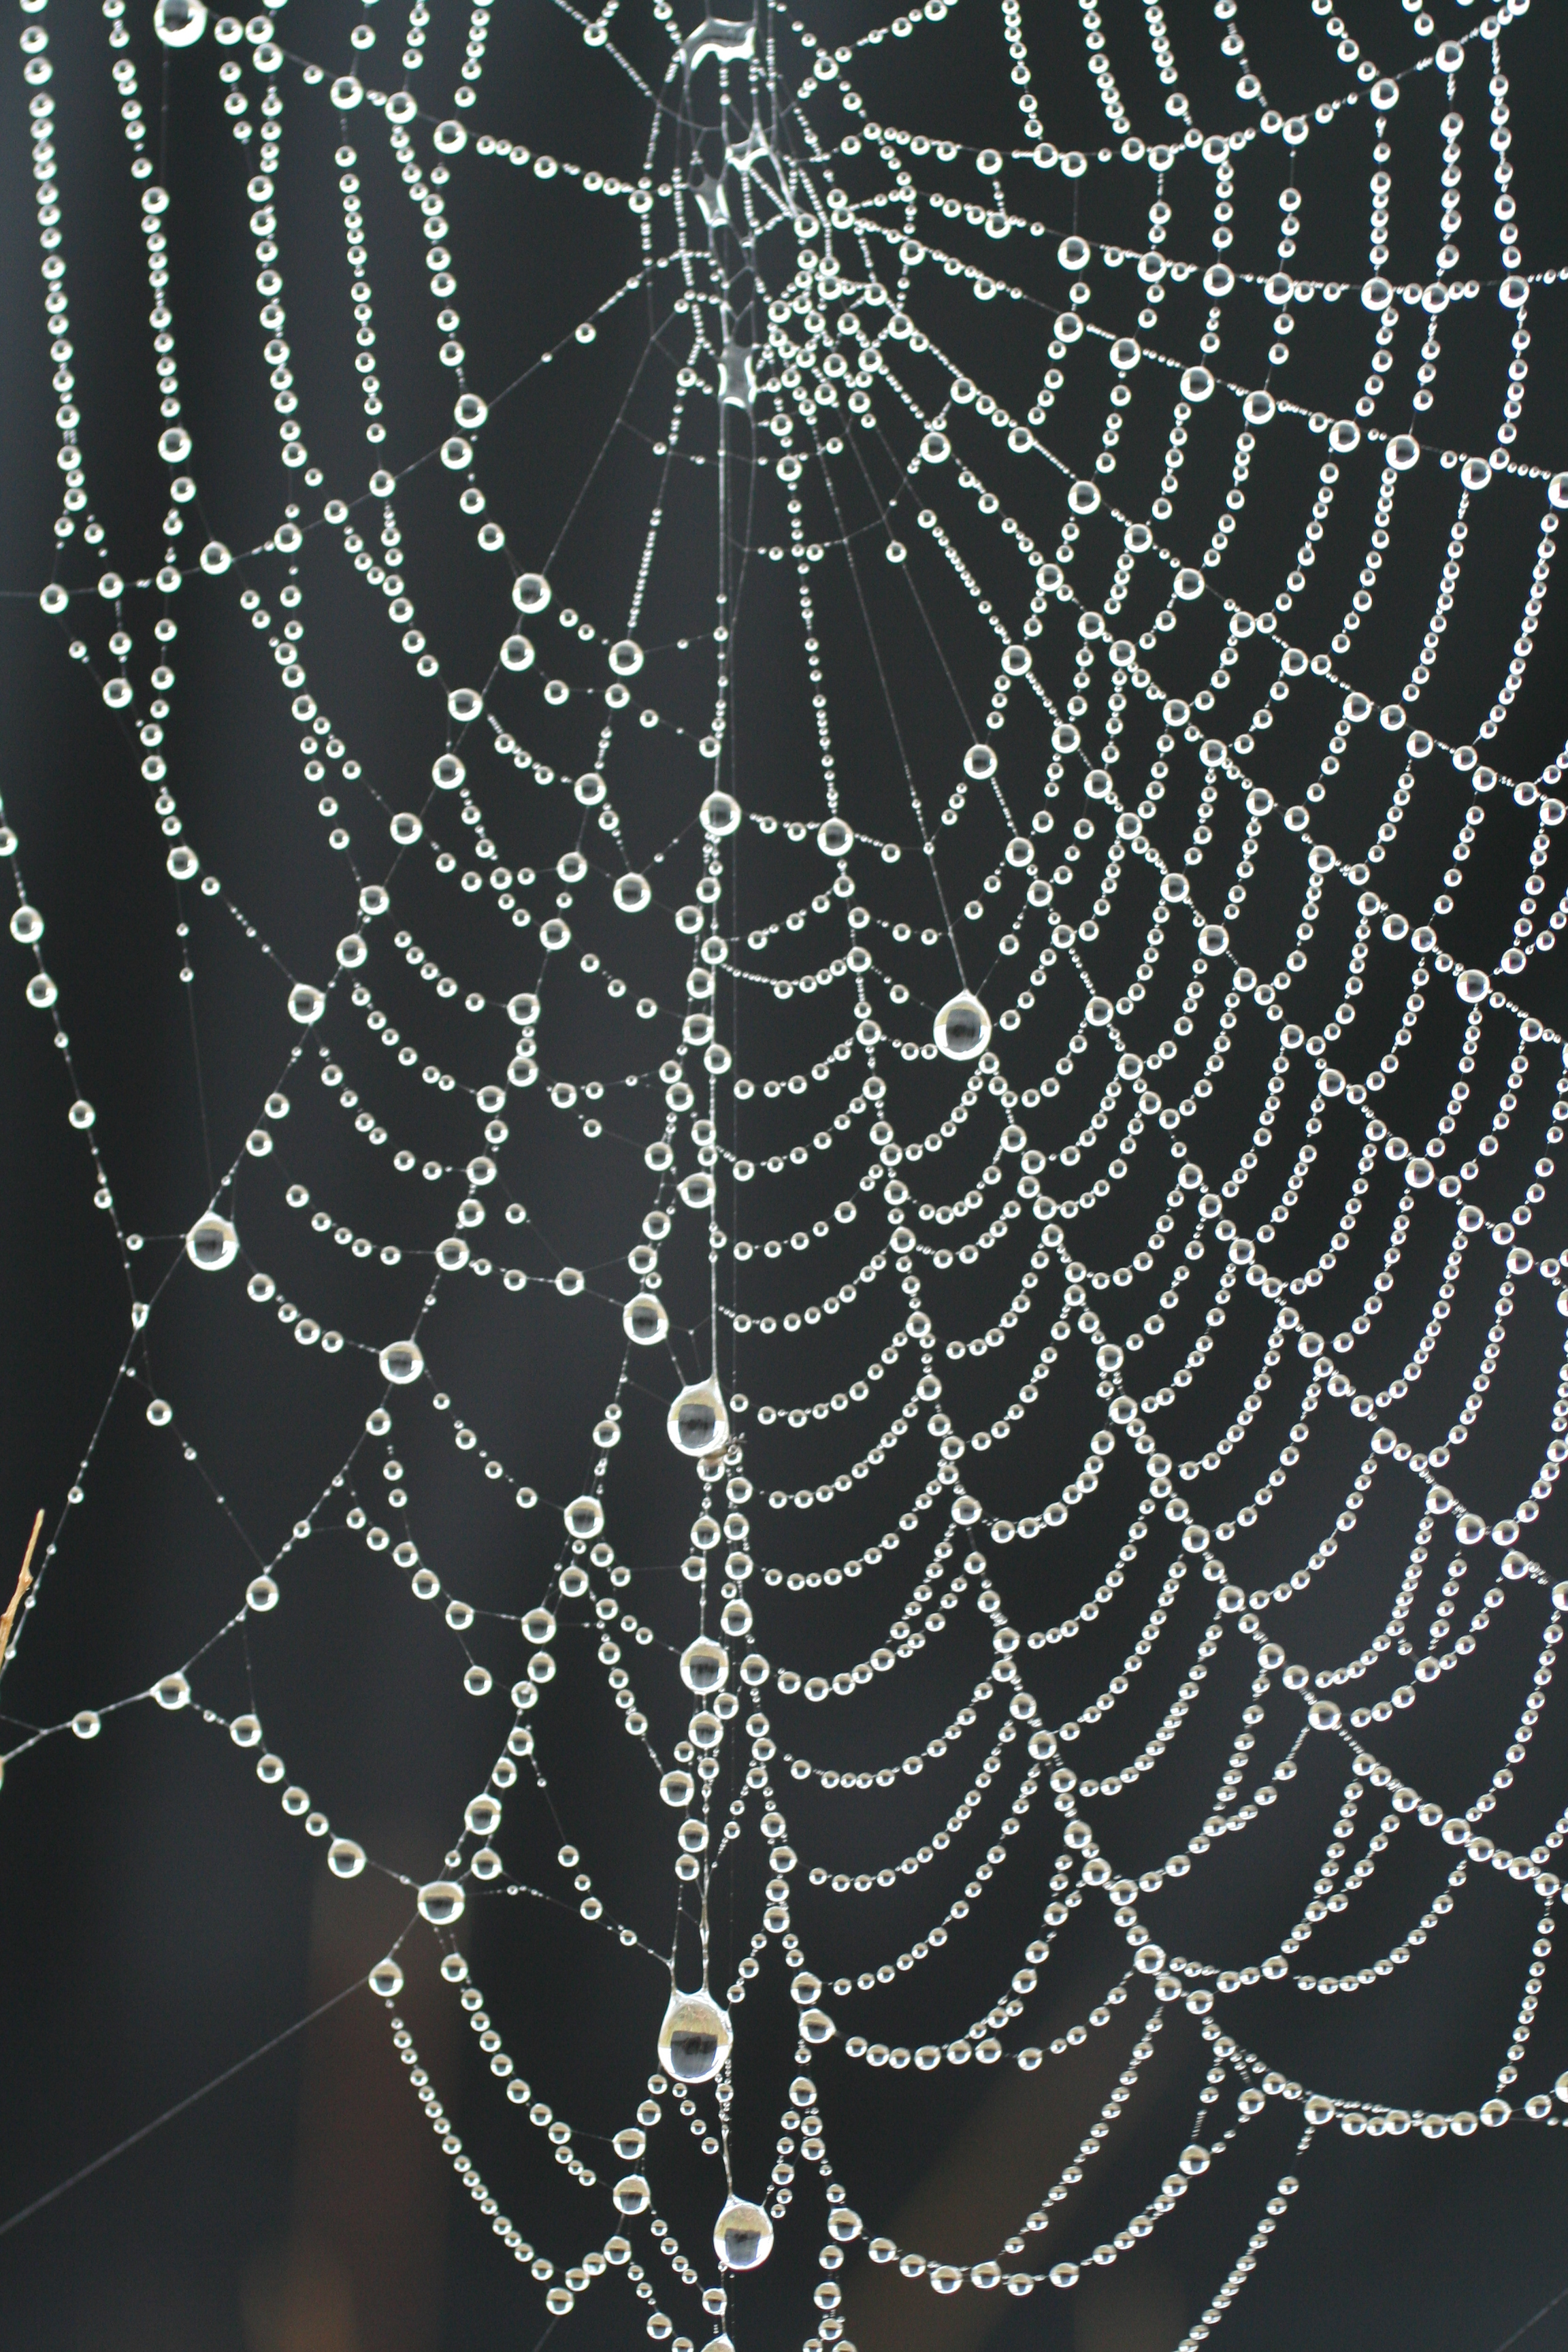 spider_web_necklace_with_pearls_of_dew-1